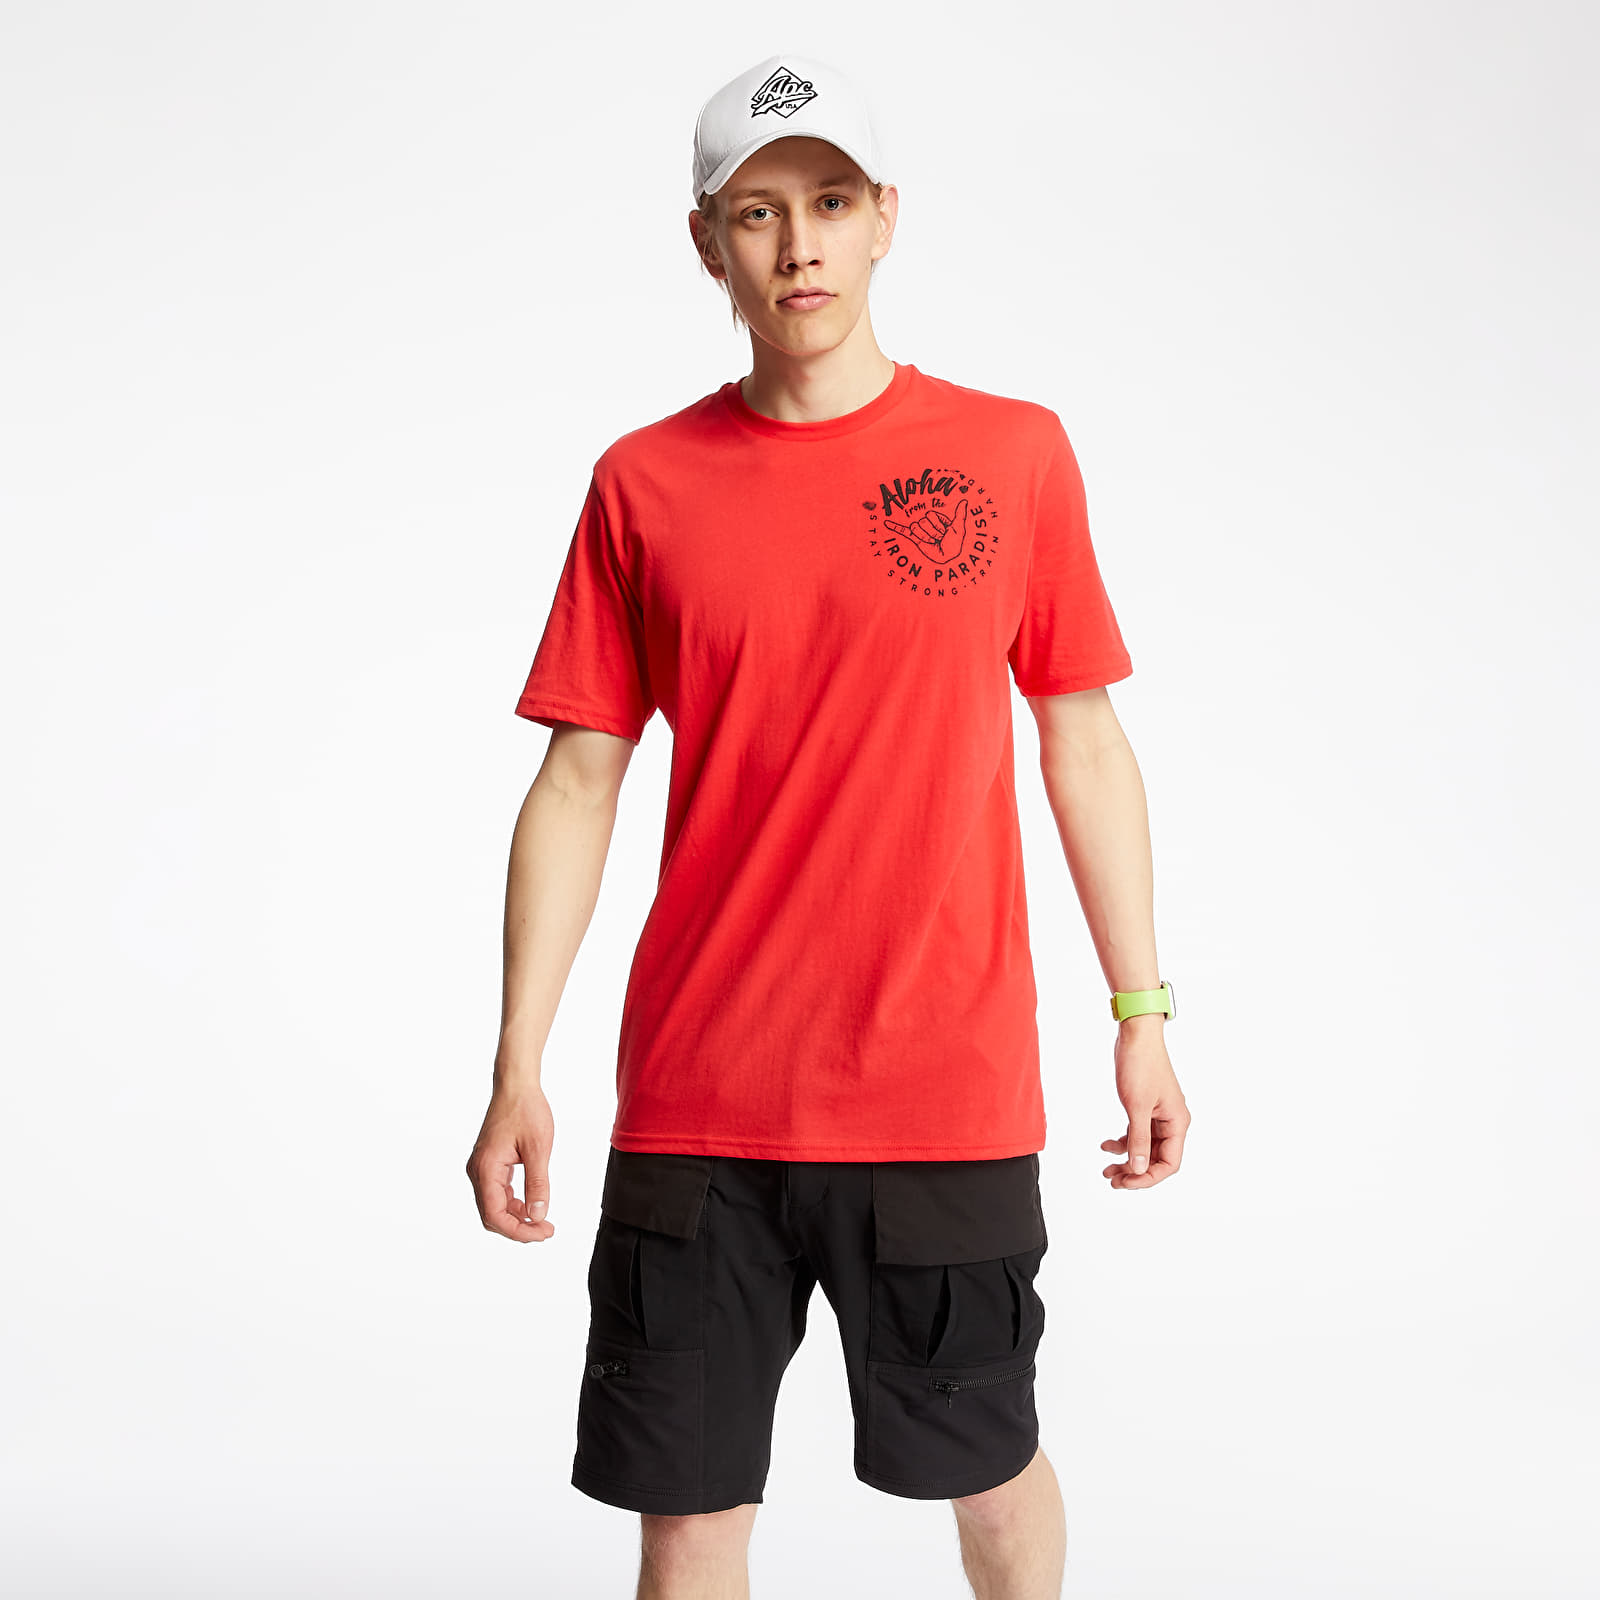 T-shirts Under Armour Project Rock Iron Paradise Tee Versa Red/ Black